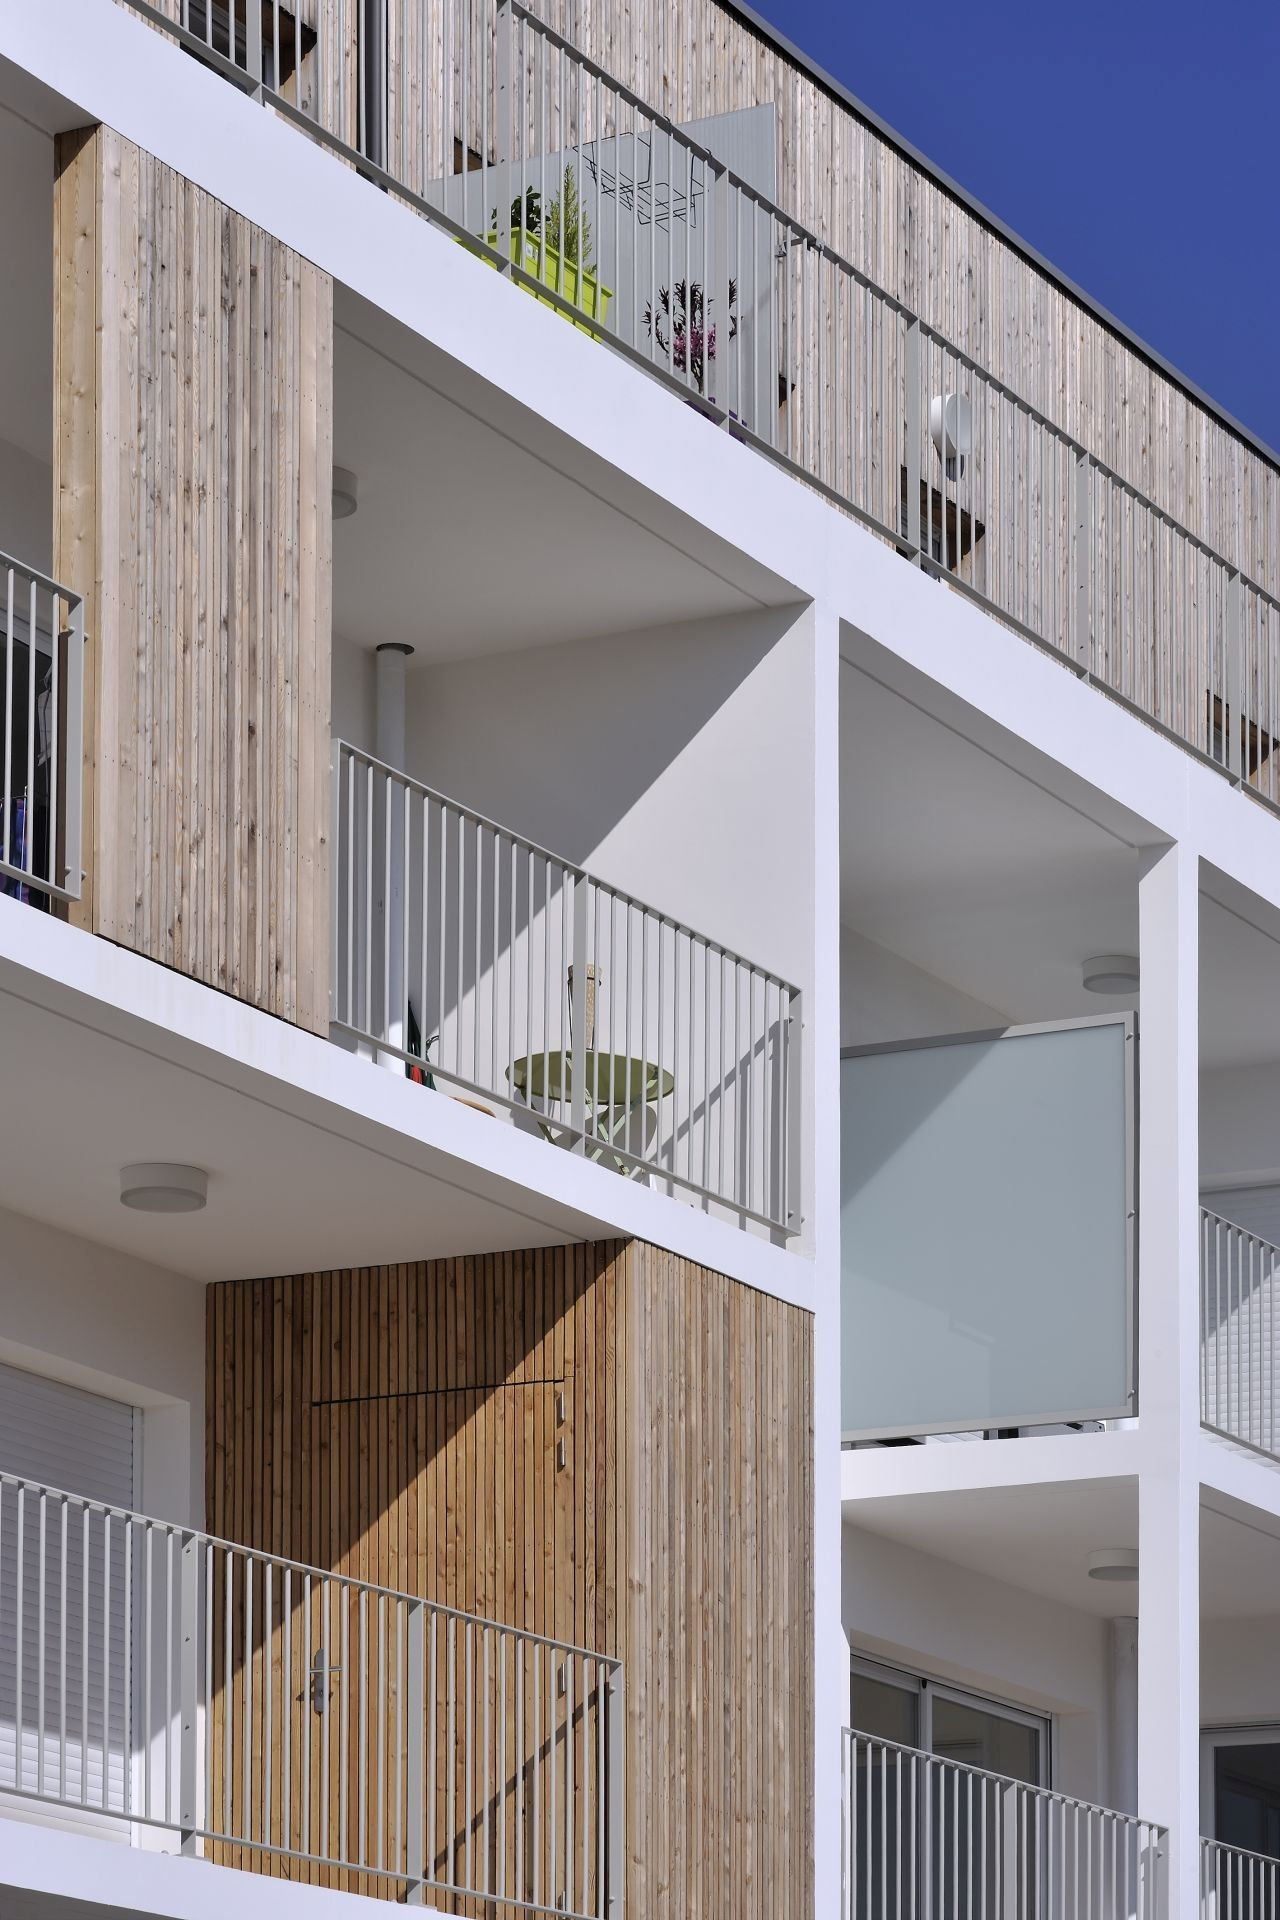 Stylish balconies become integral parts of their building for Balcony gallery